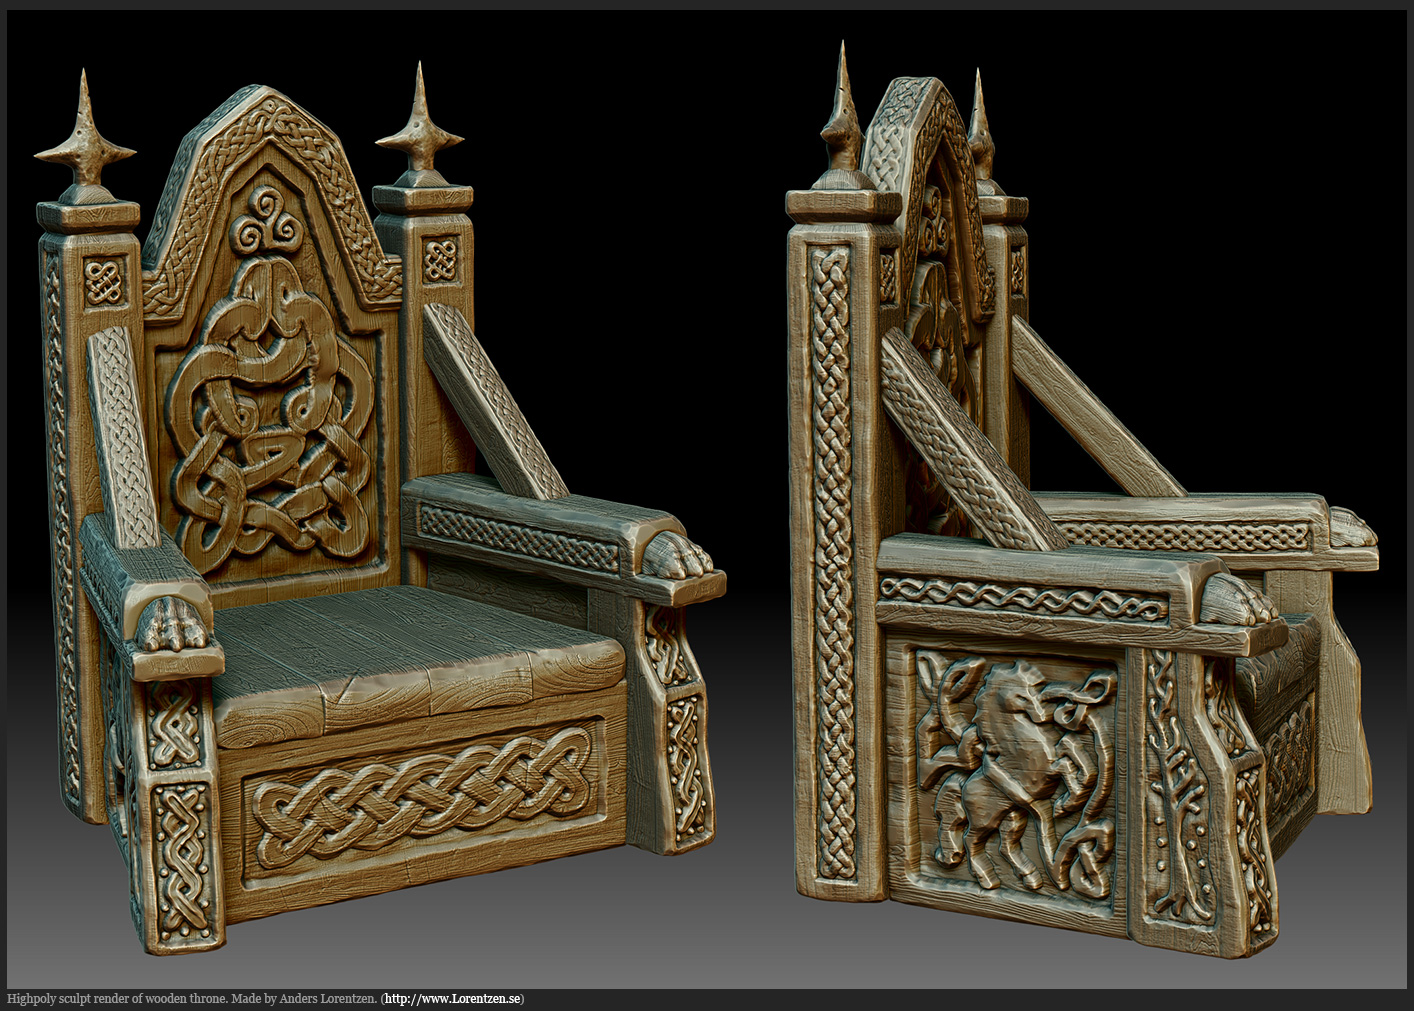 20121016_throne_render_no_c.jpg